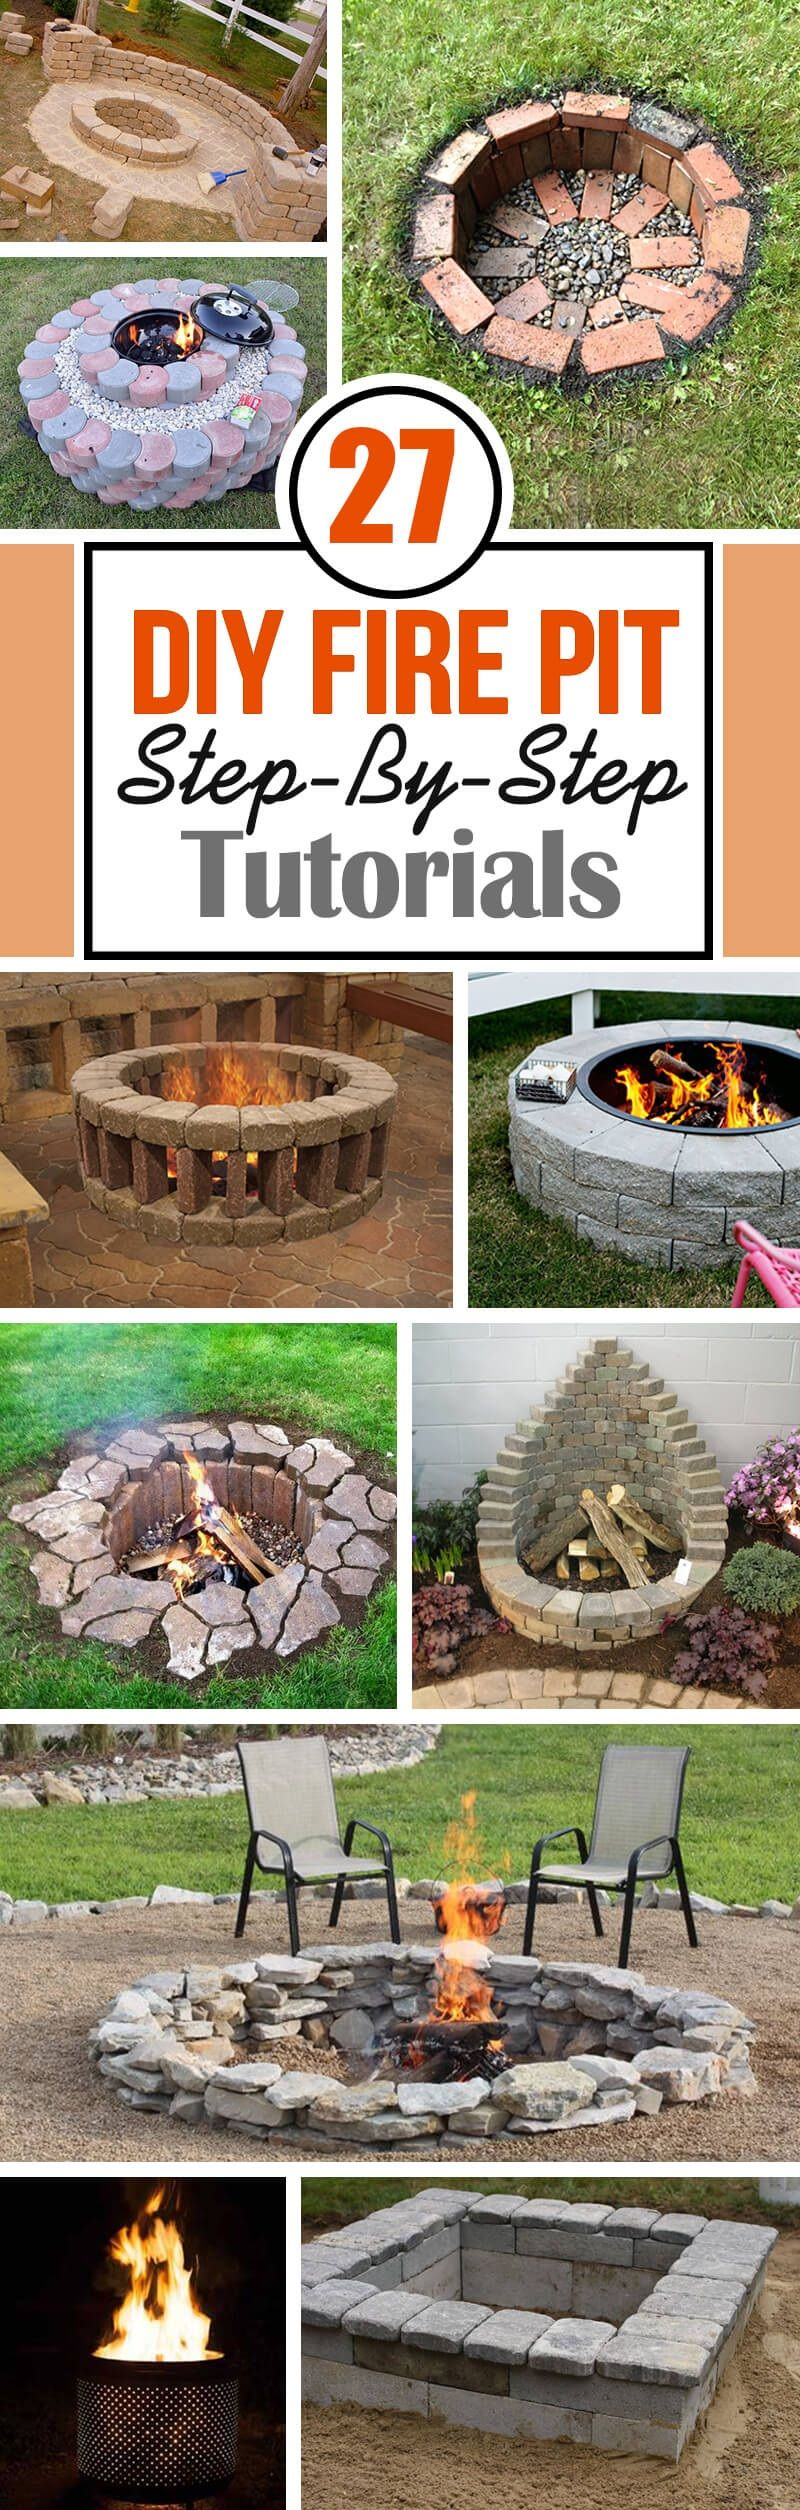 a63ae1d3246059ec38a554d277ffa56e Top Result 50 Awesome Rustic Fire Pit